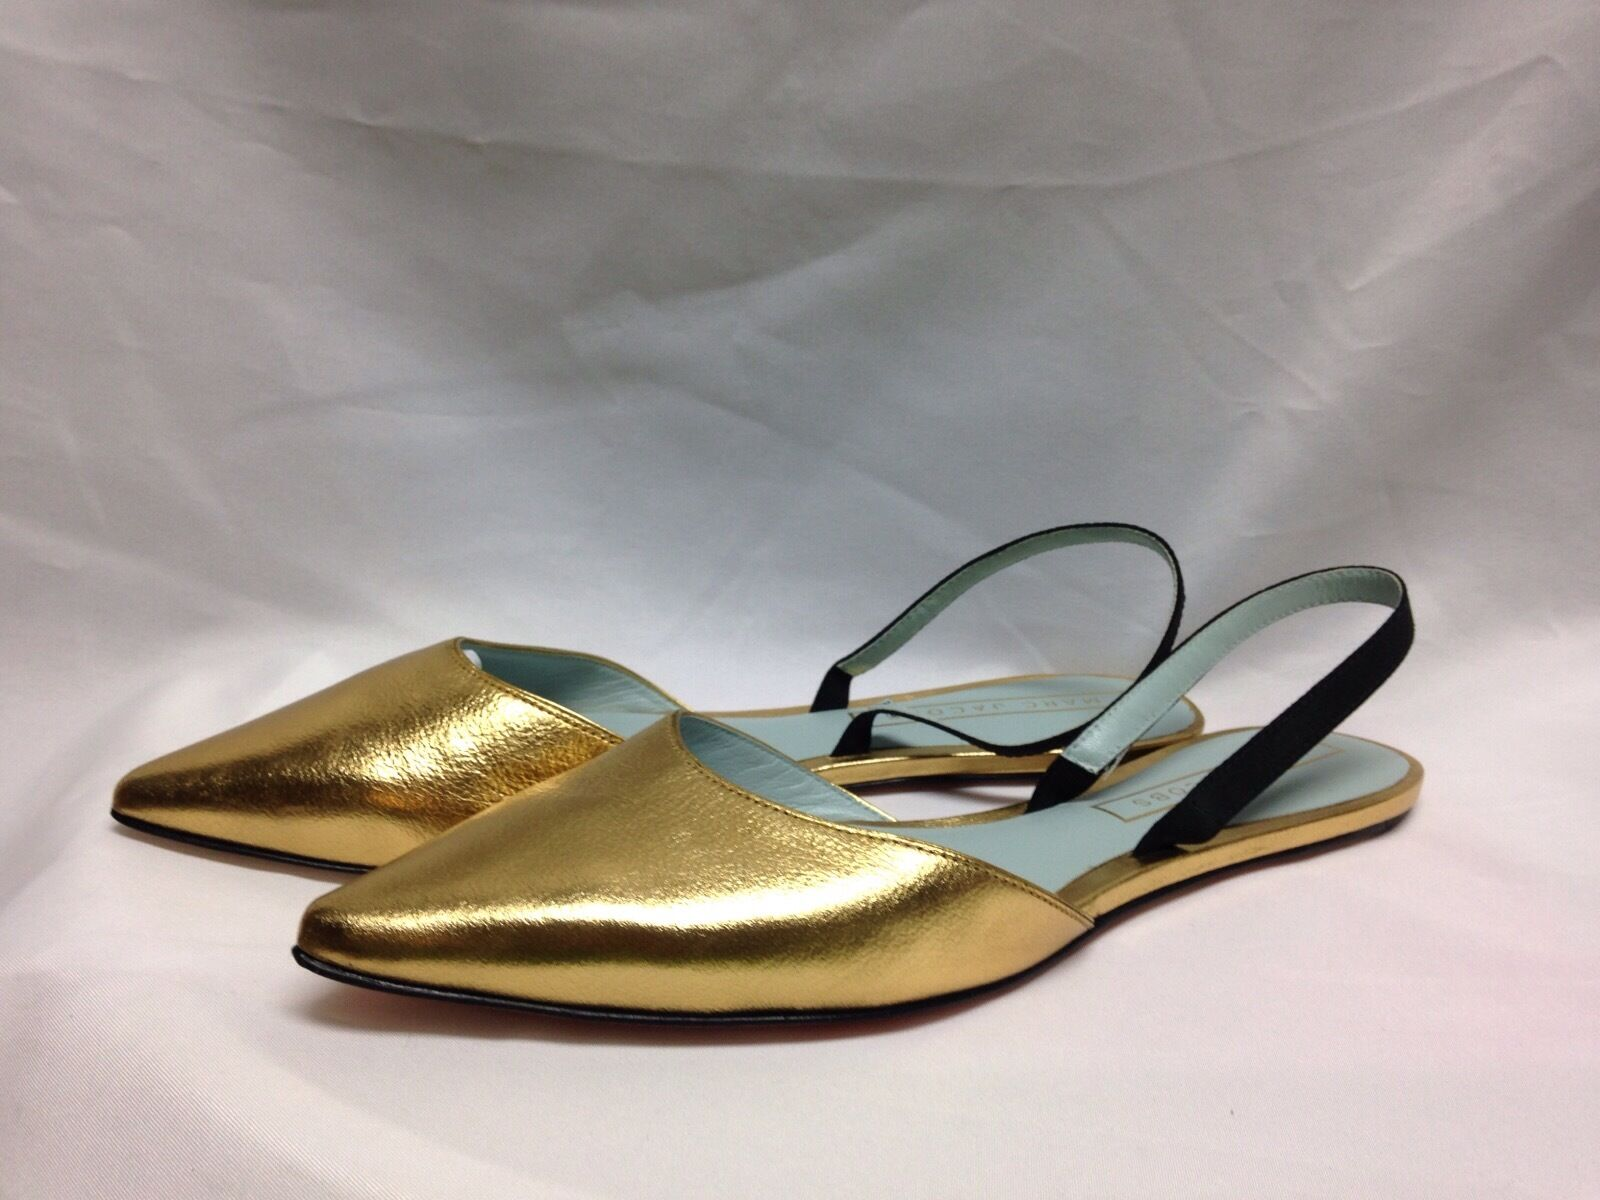 Marc Jacobs Joline Slingback Flats Gold M9000788  New w/ Box